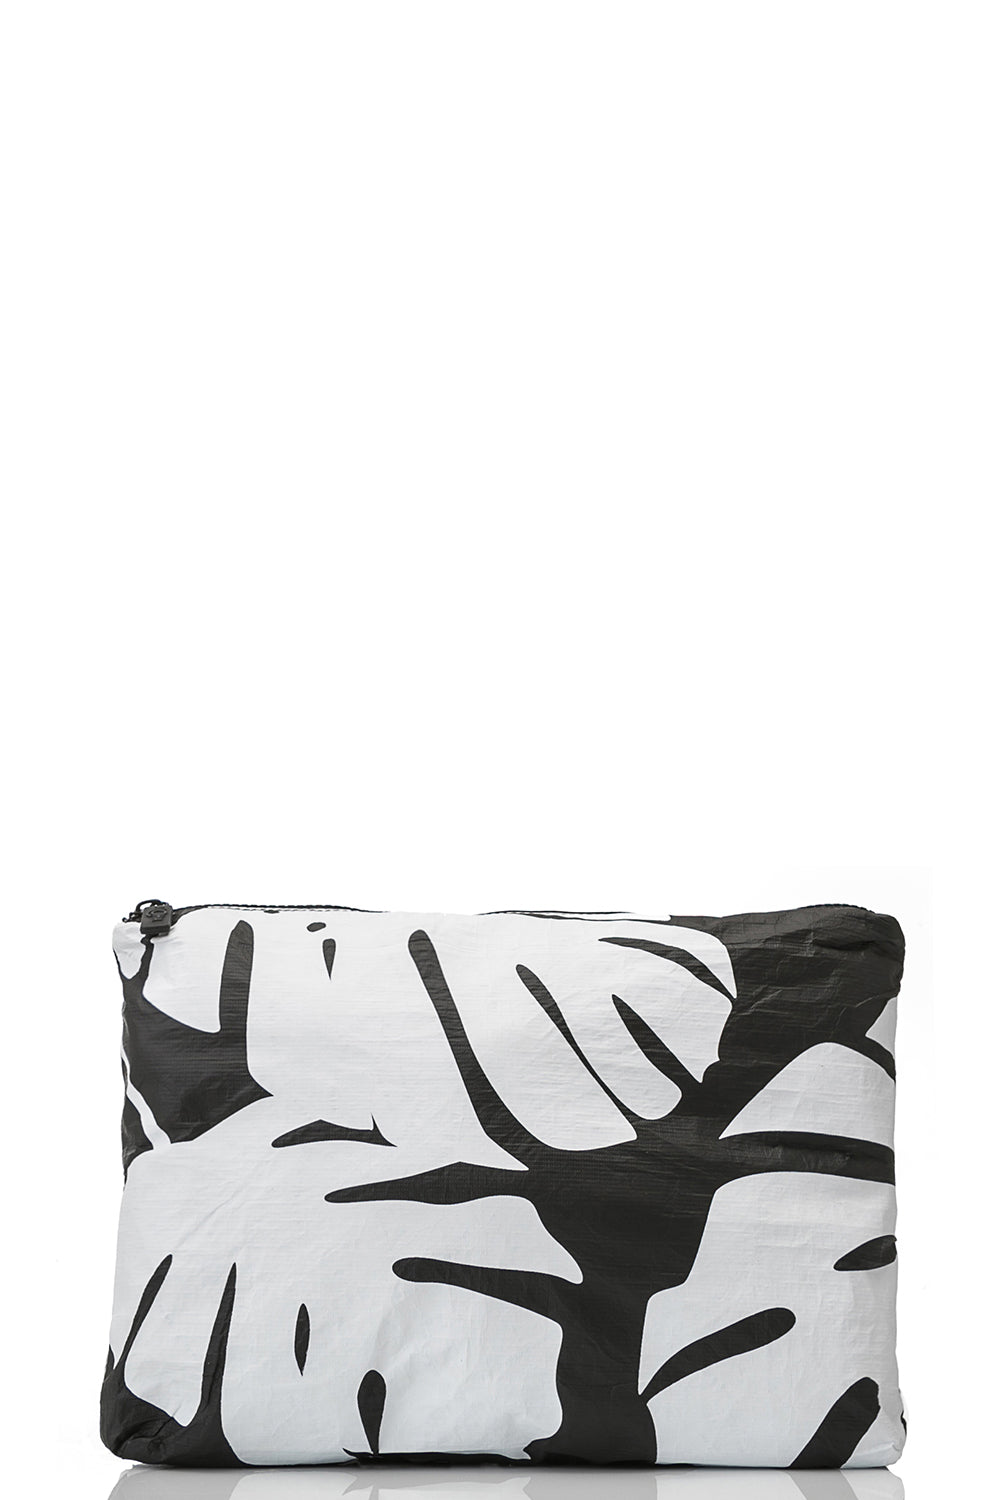 ALOHA Collection Mid Monstera Pouch White on Black